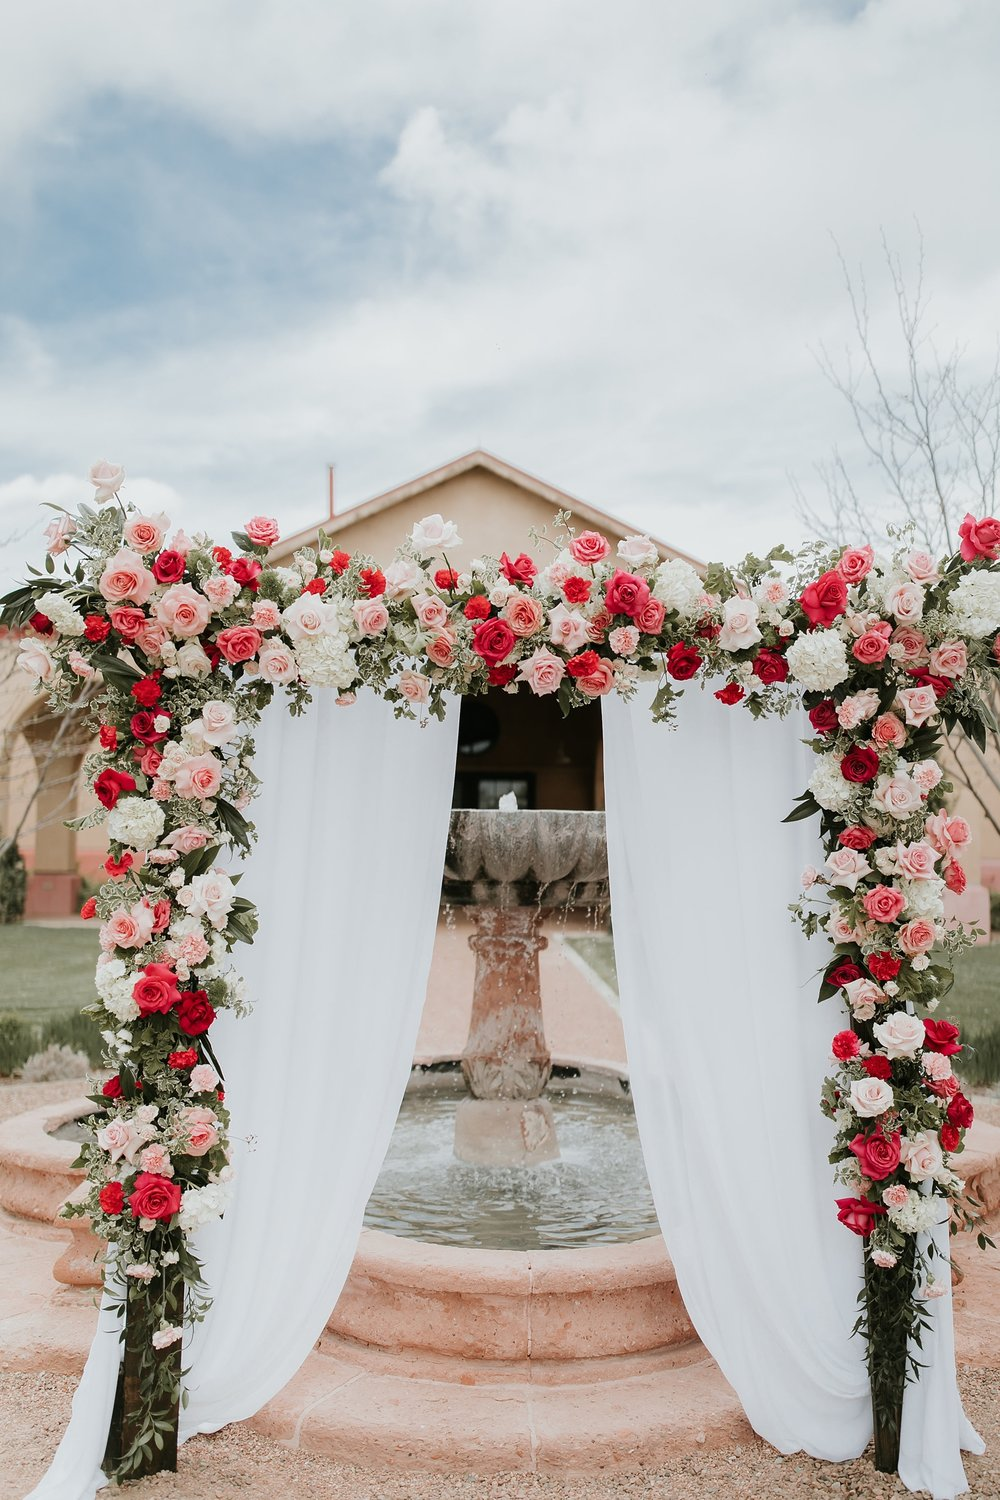 Alicia+lucia+photography+-+albuquerque+wedding+photographer+-+santa+fe+wedding+photography+-+new+mexico+wedding+photographer+-+new+mexico+engagement+-+la+mesita+ranch+wedding+-+la+mesita+ranch+spring+wedding_0018.jpg